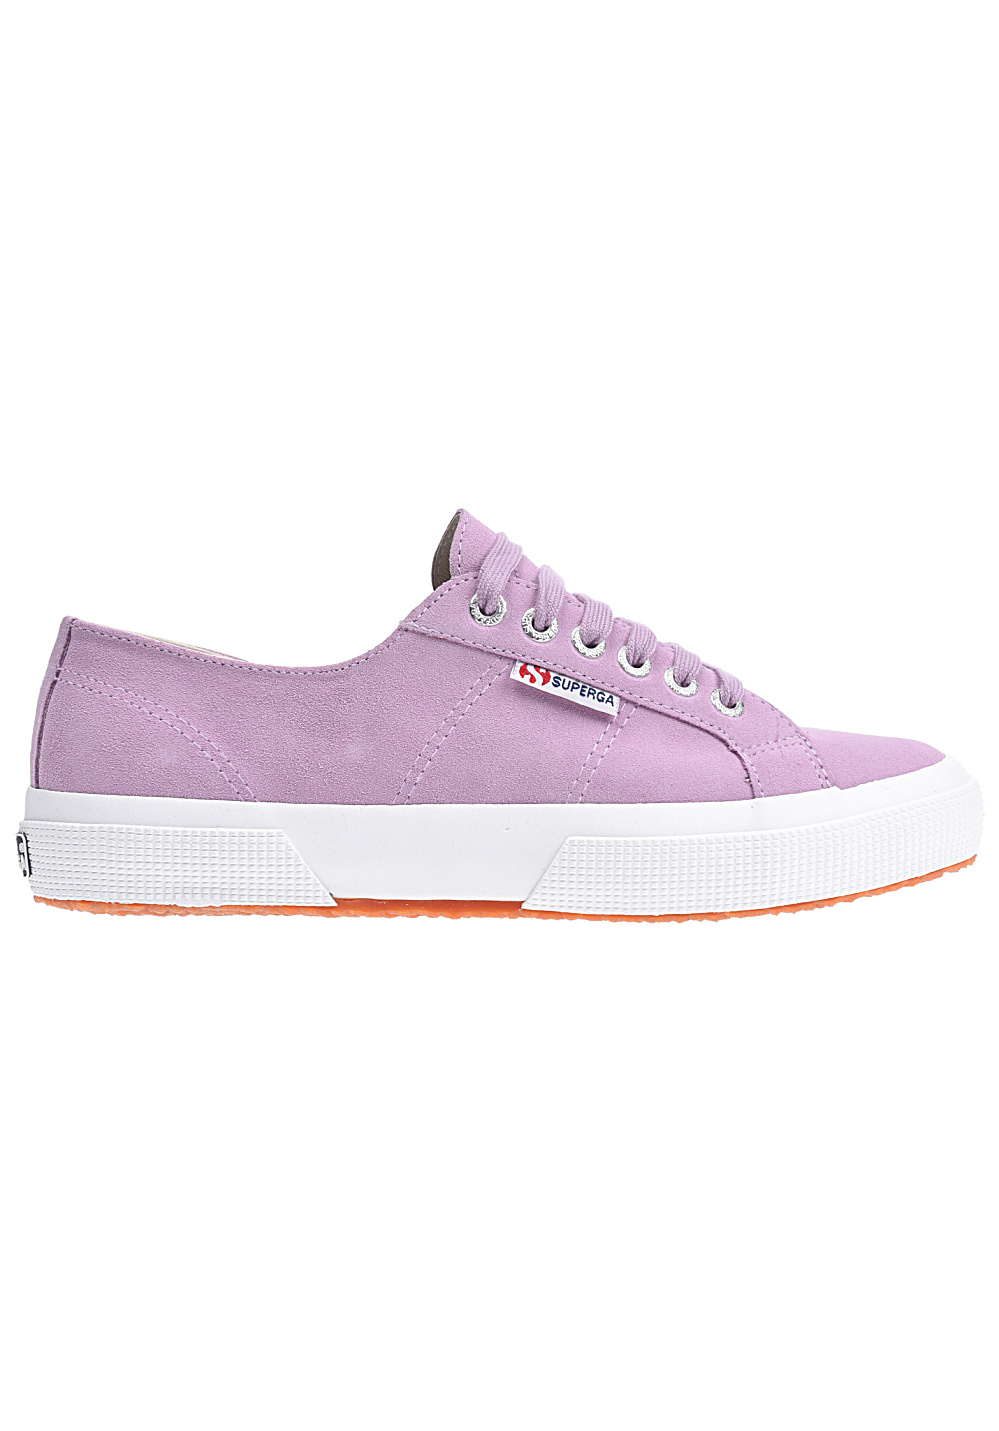 Superga Sneakers - Violeta Venta falsificada Compra de Outlet Venta exclusiva en línea Exclusivo de Outlet e08XaT1N